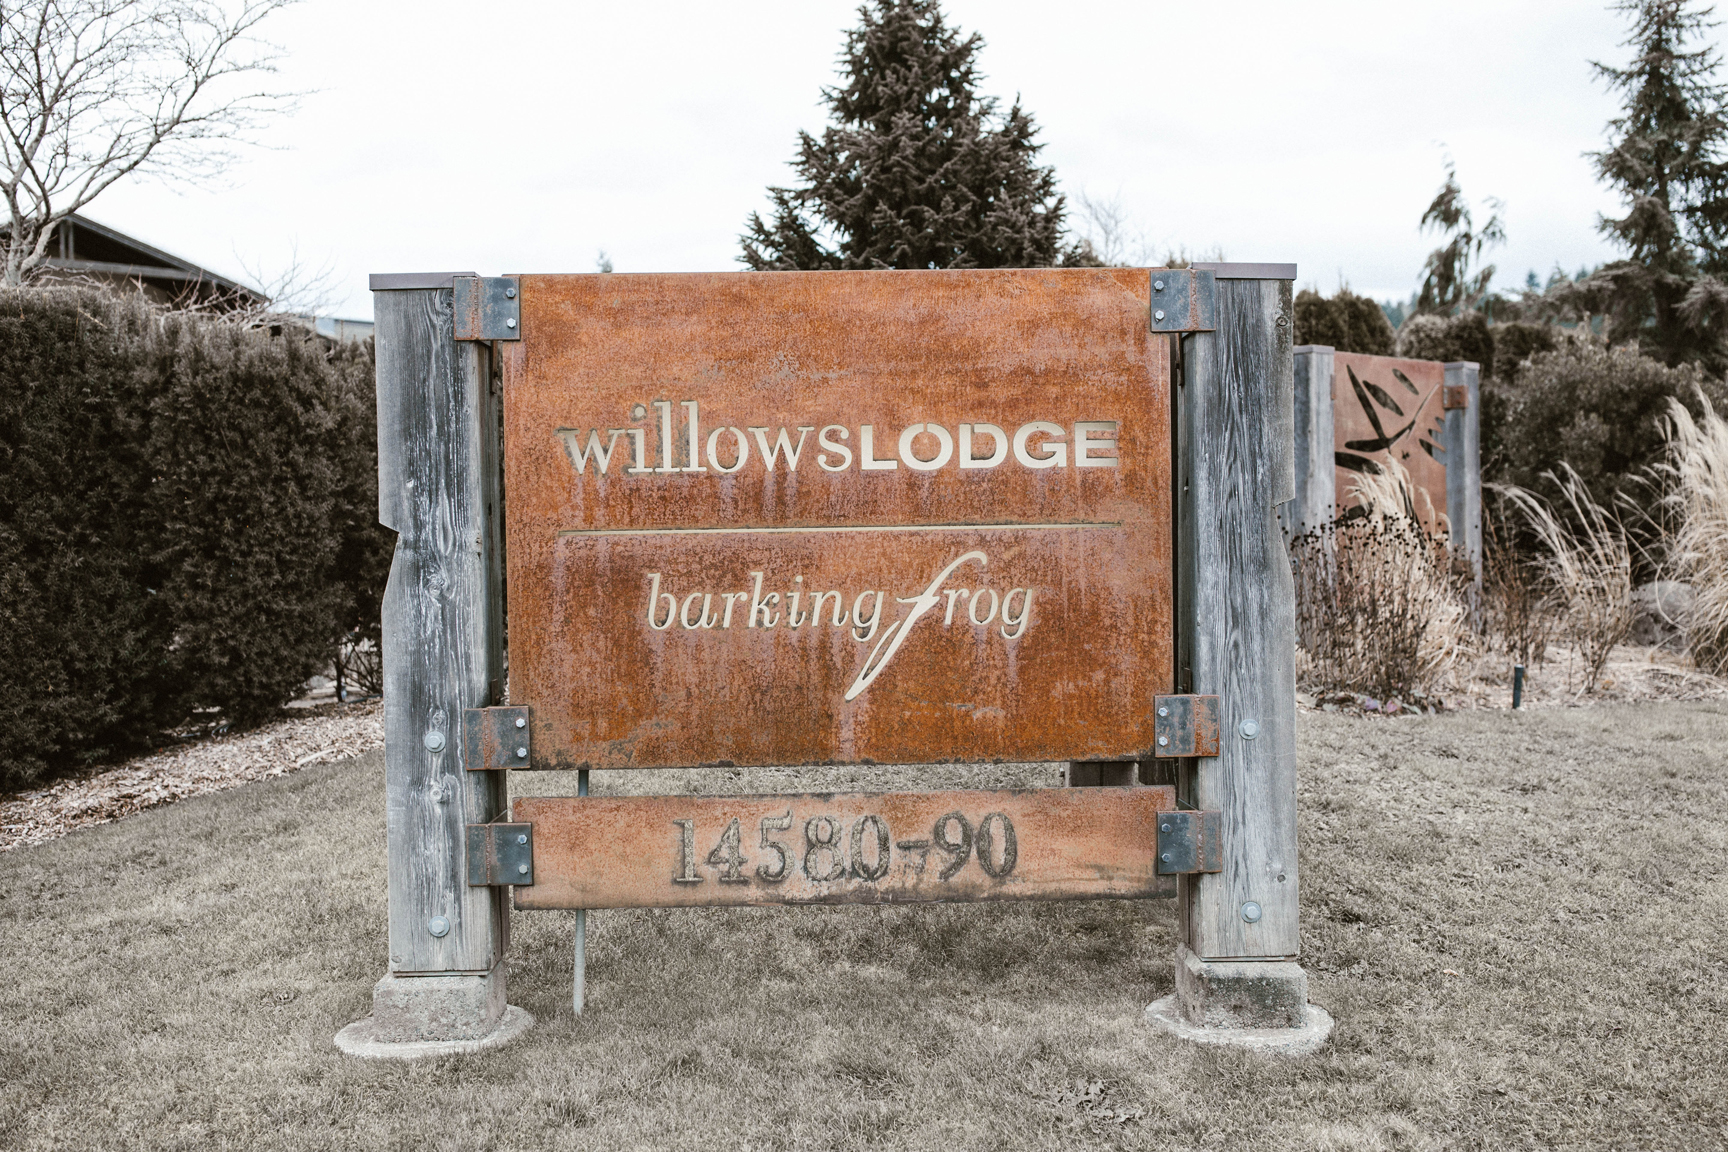 Willows+Lodge_Woodinville_2017_Weddings+In+Woodinville213.jpg